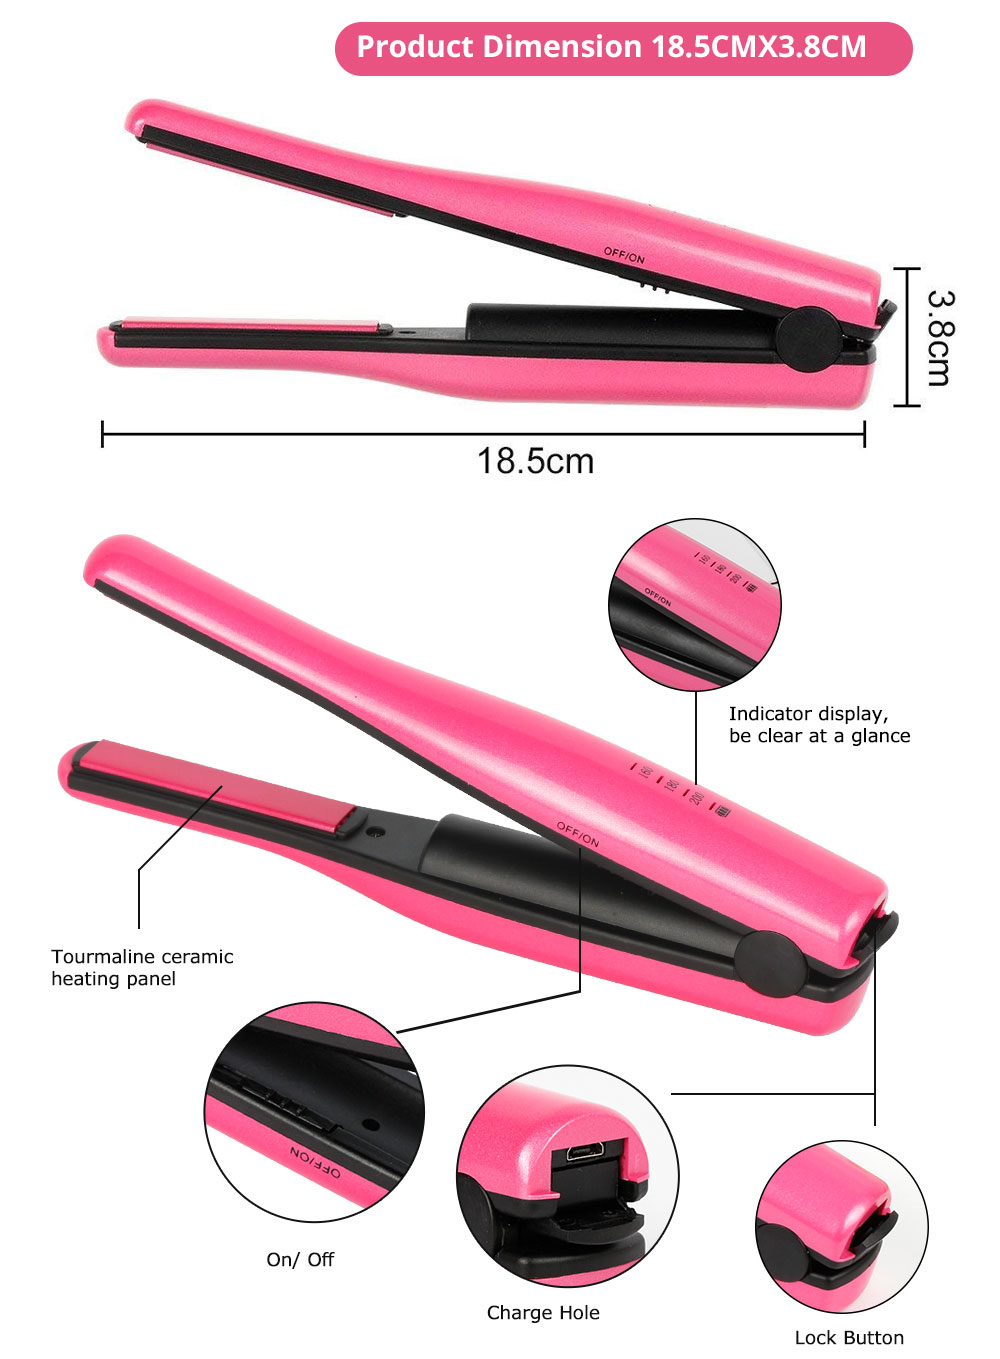 Mini Travel Portable Hair Straightener Curling Iron Cordless USB Charger for Beginner Christmas Gift BLACK FRIDAY SALE 5